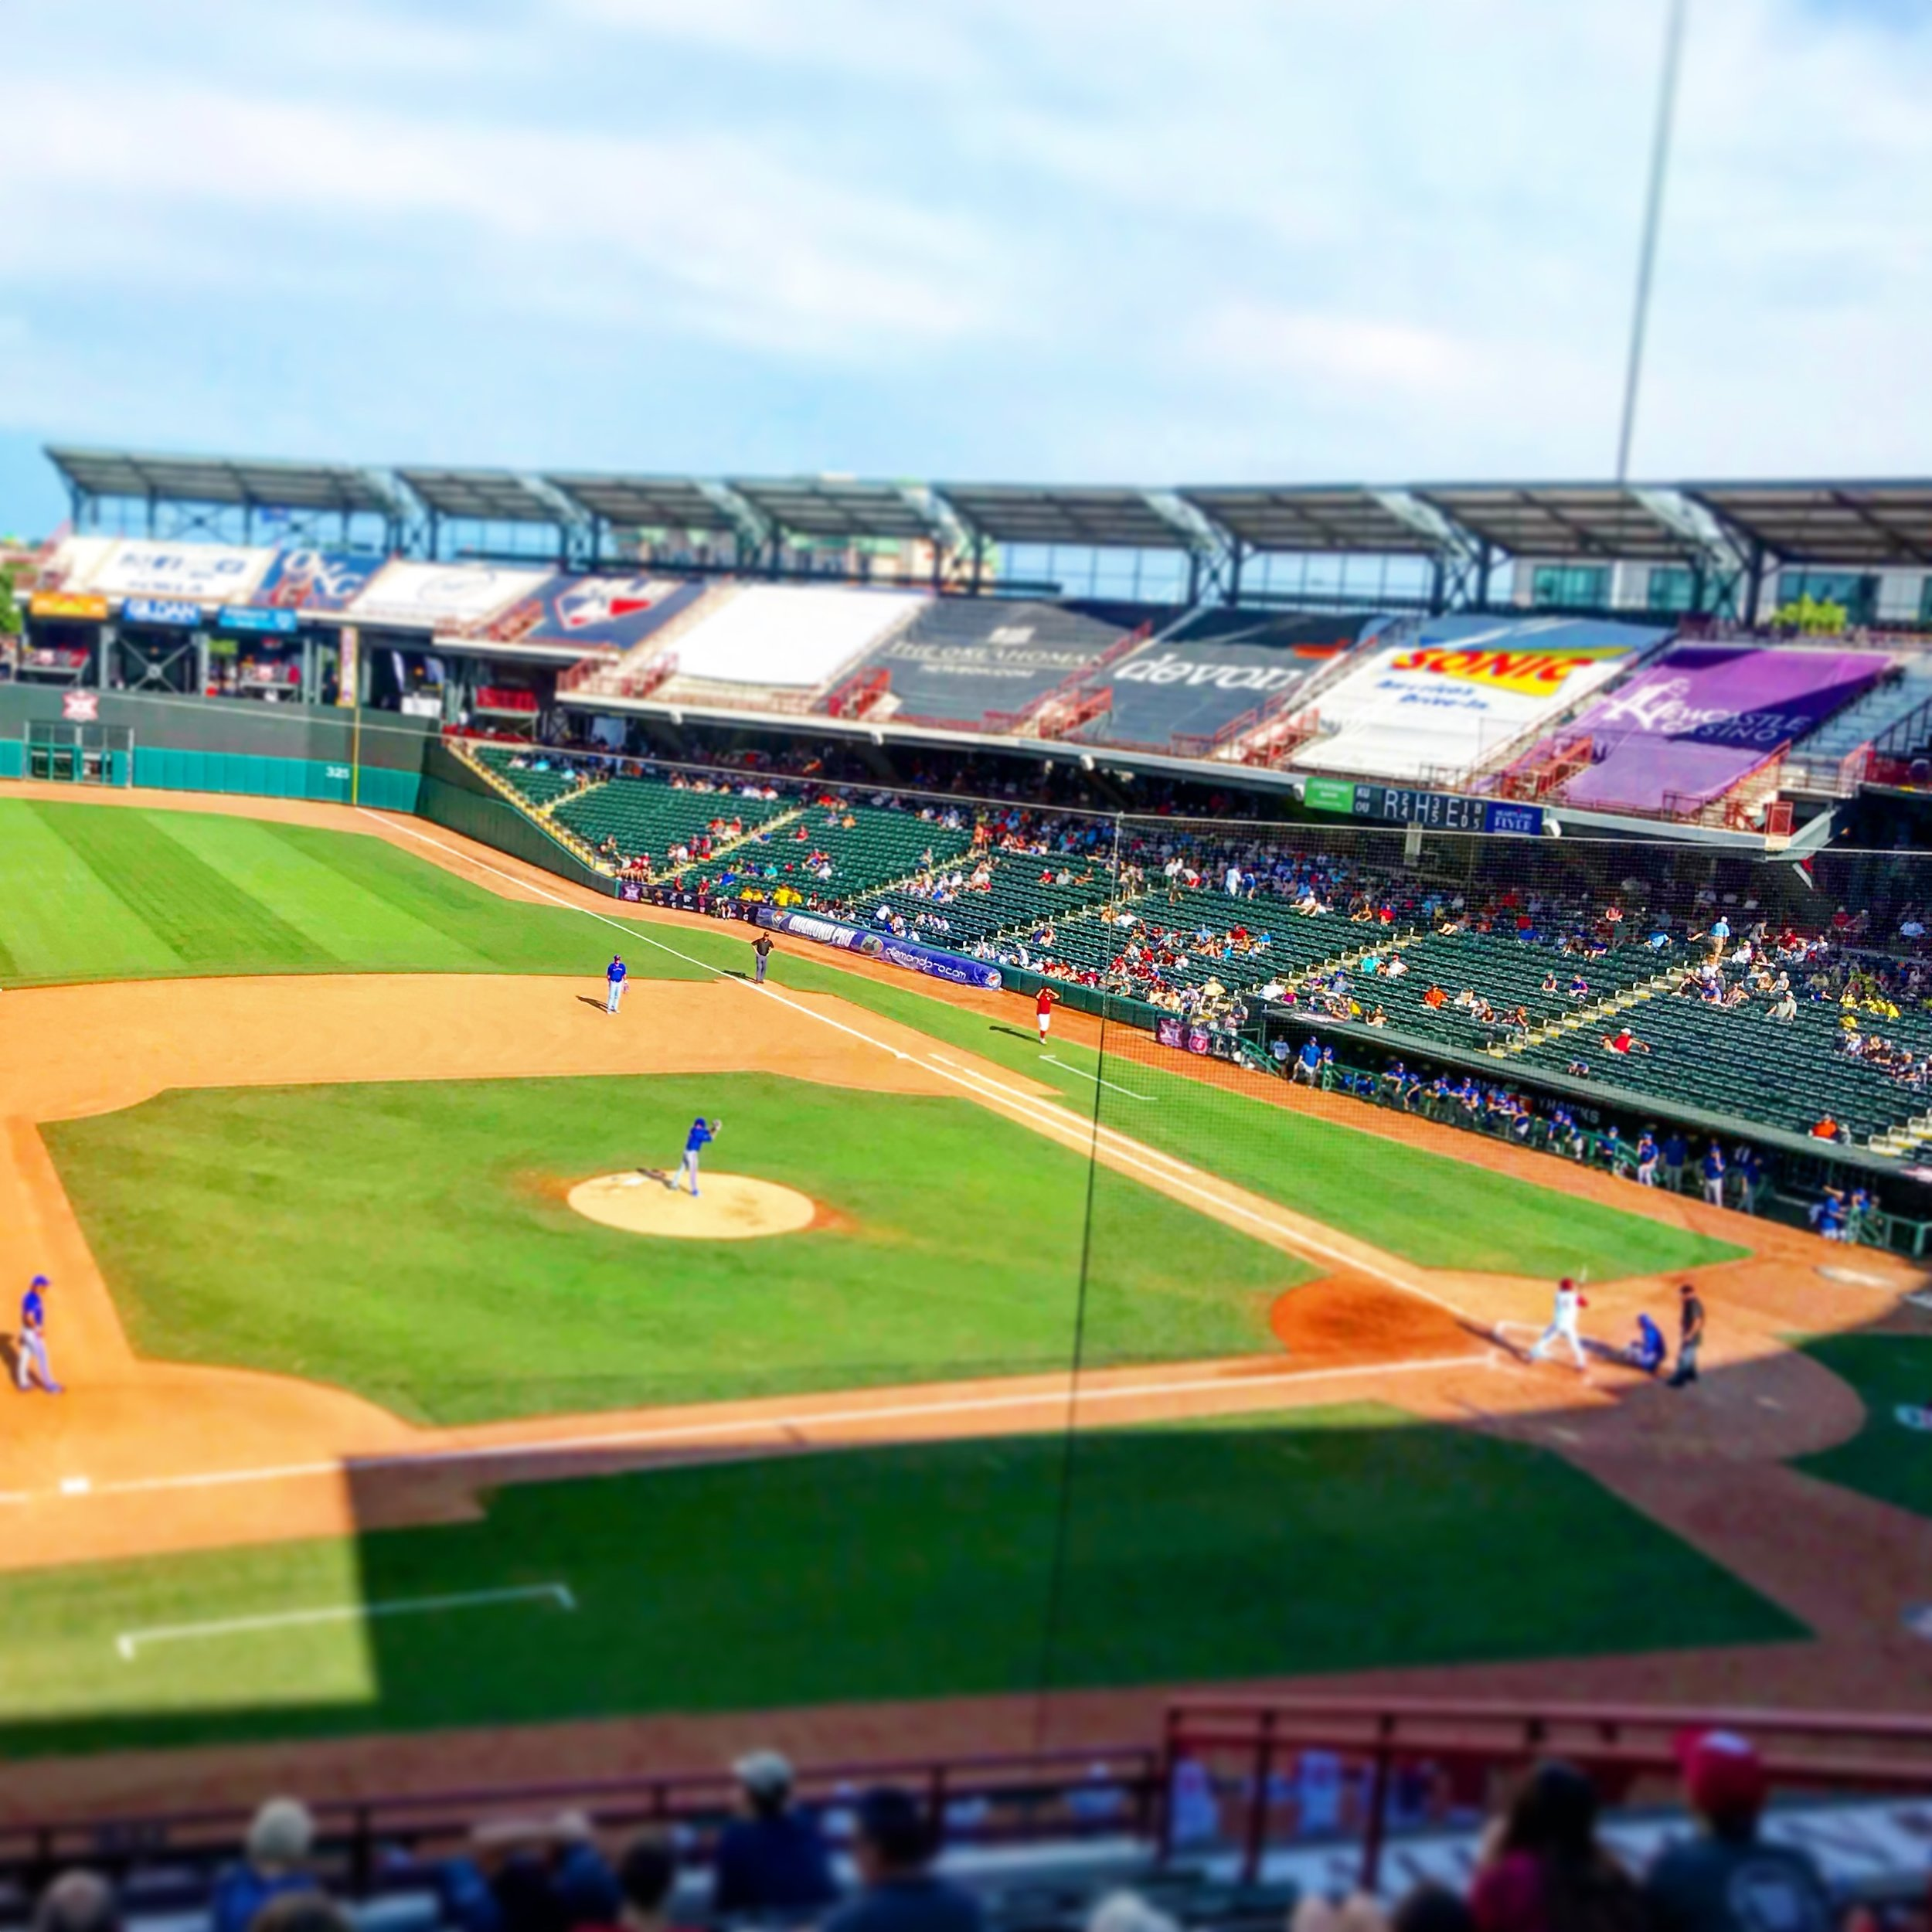 Chickasaw BricktownBallpark - Home of the OKC Dodgers and various entertainment events.